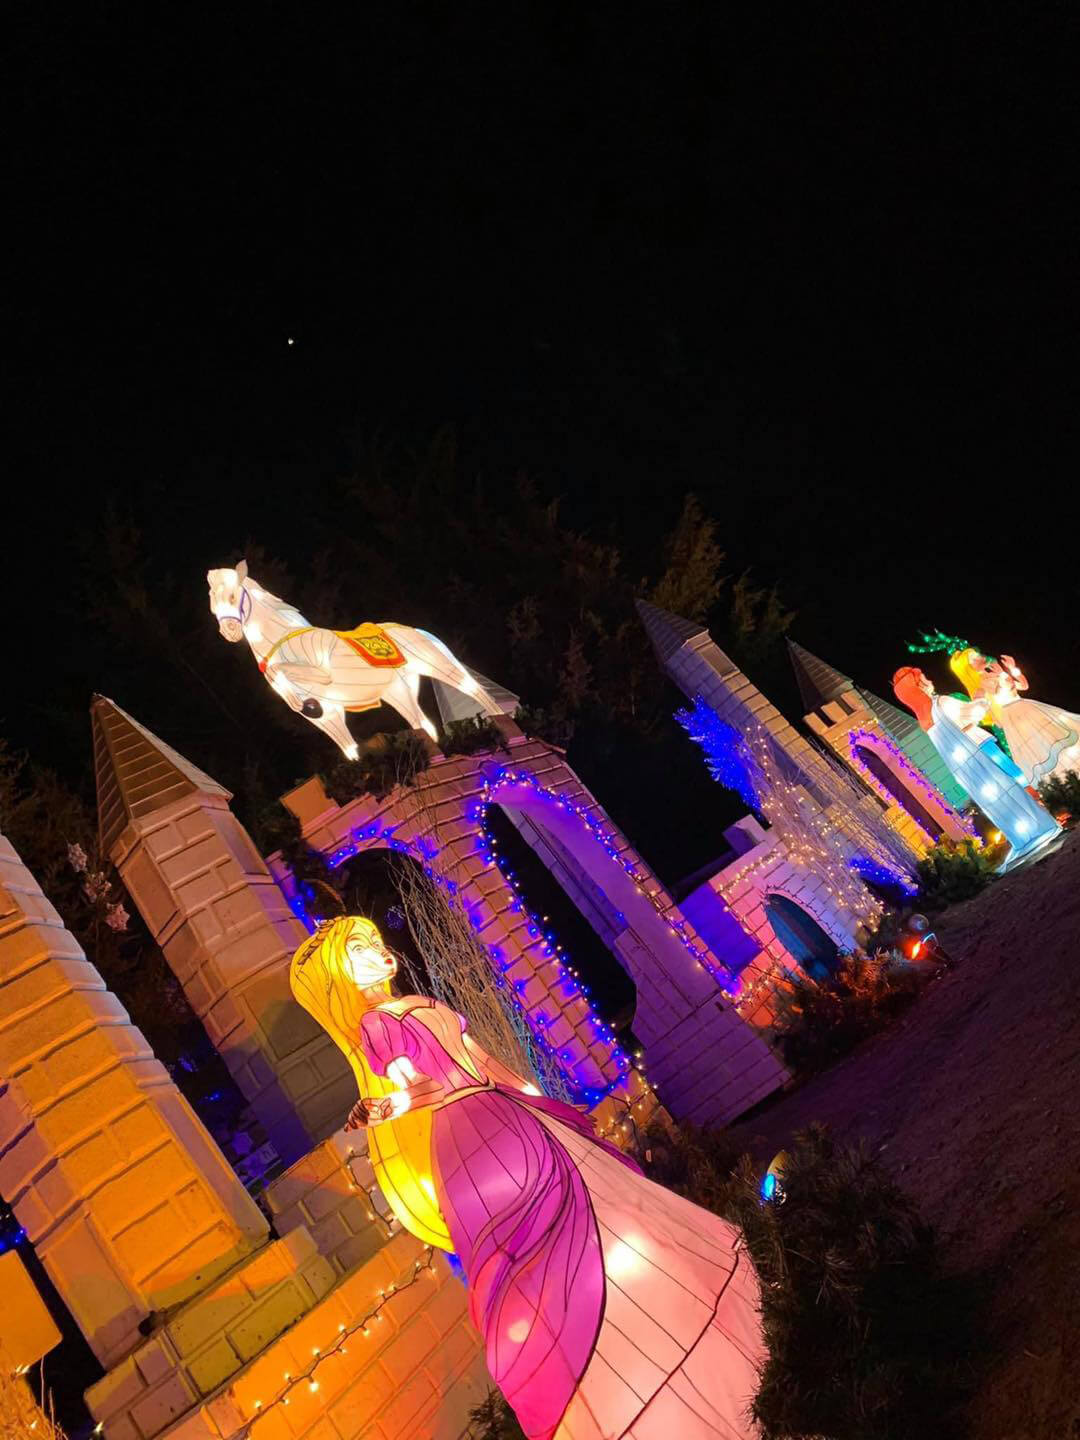 A towering castle facade with fairy tale characters, lit up colorfully at night